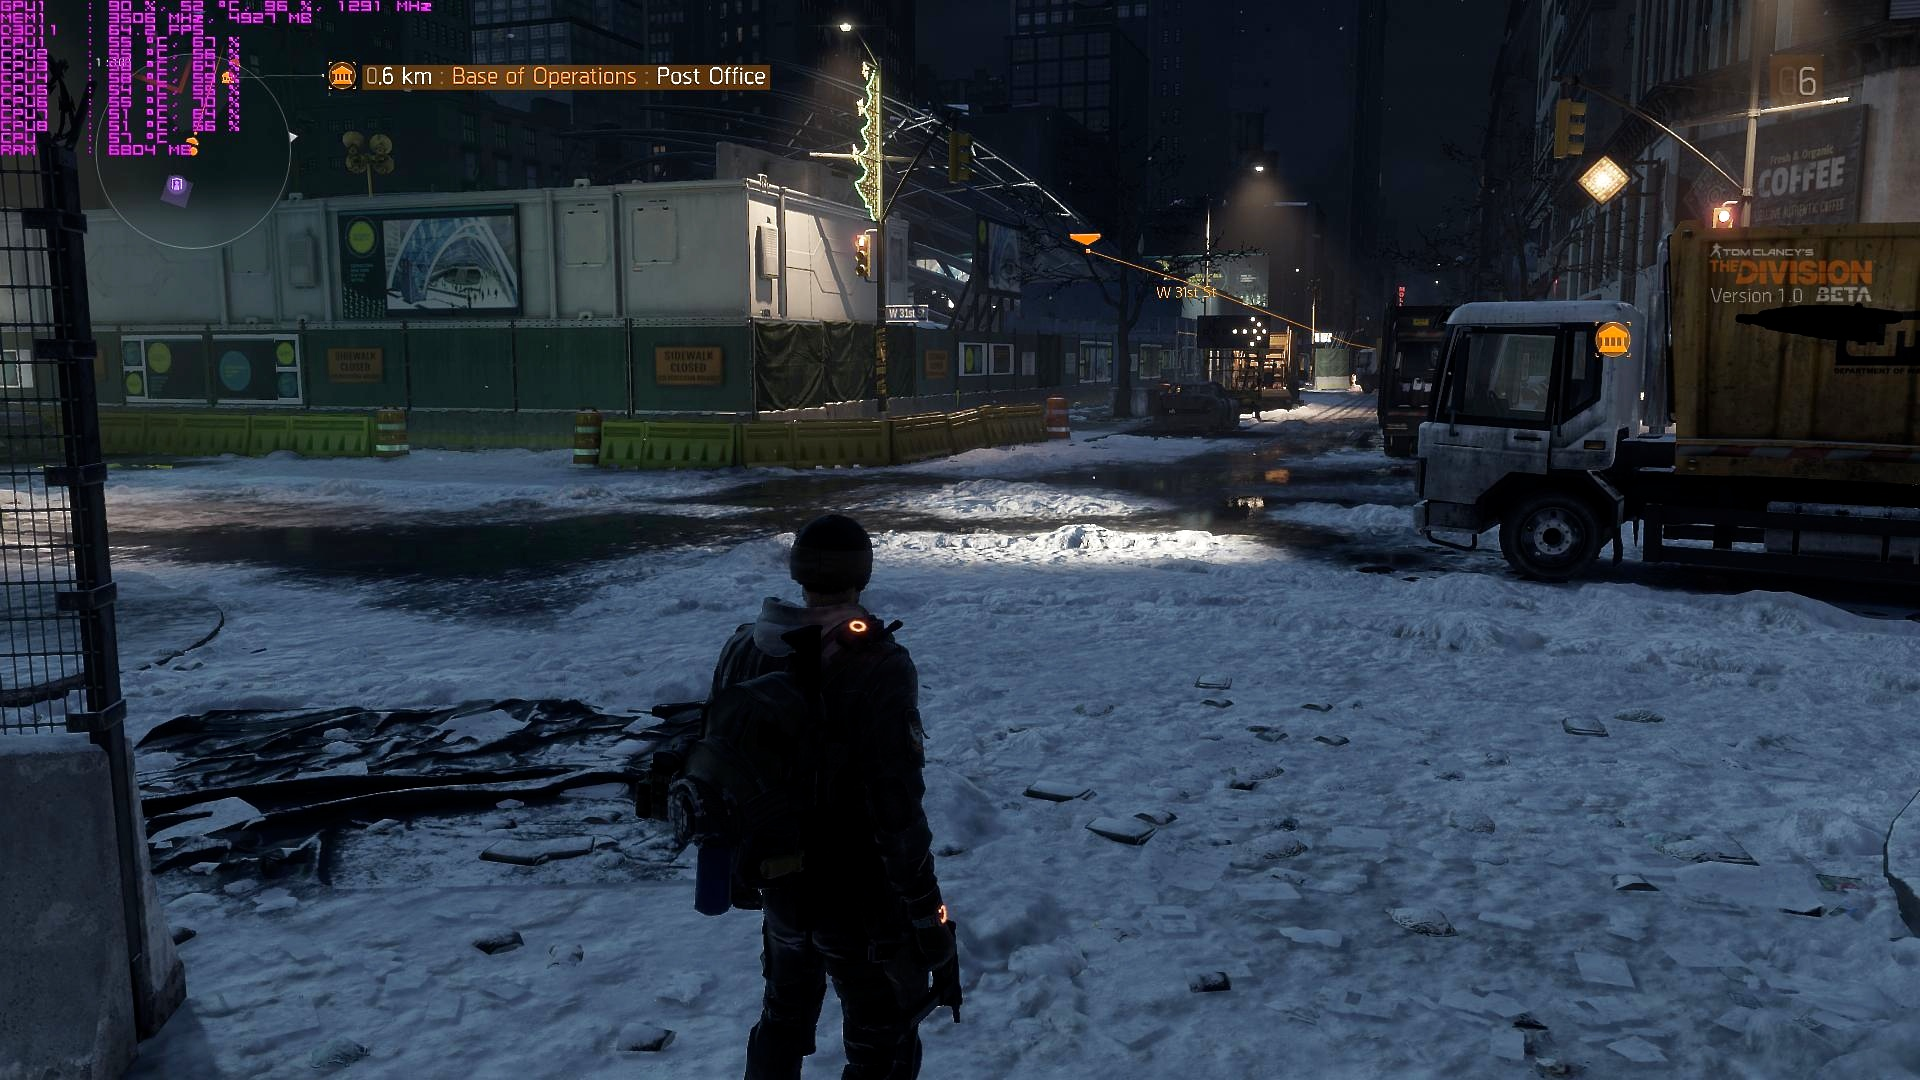 The Division PC Screenshots, Max settings with HBAO+